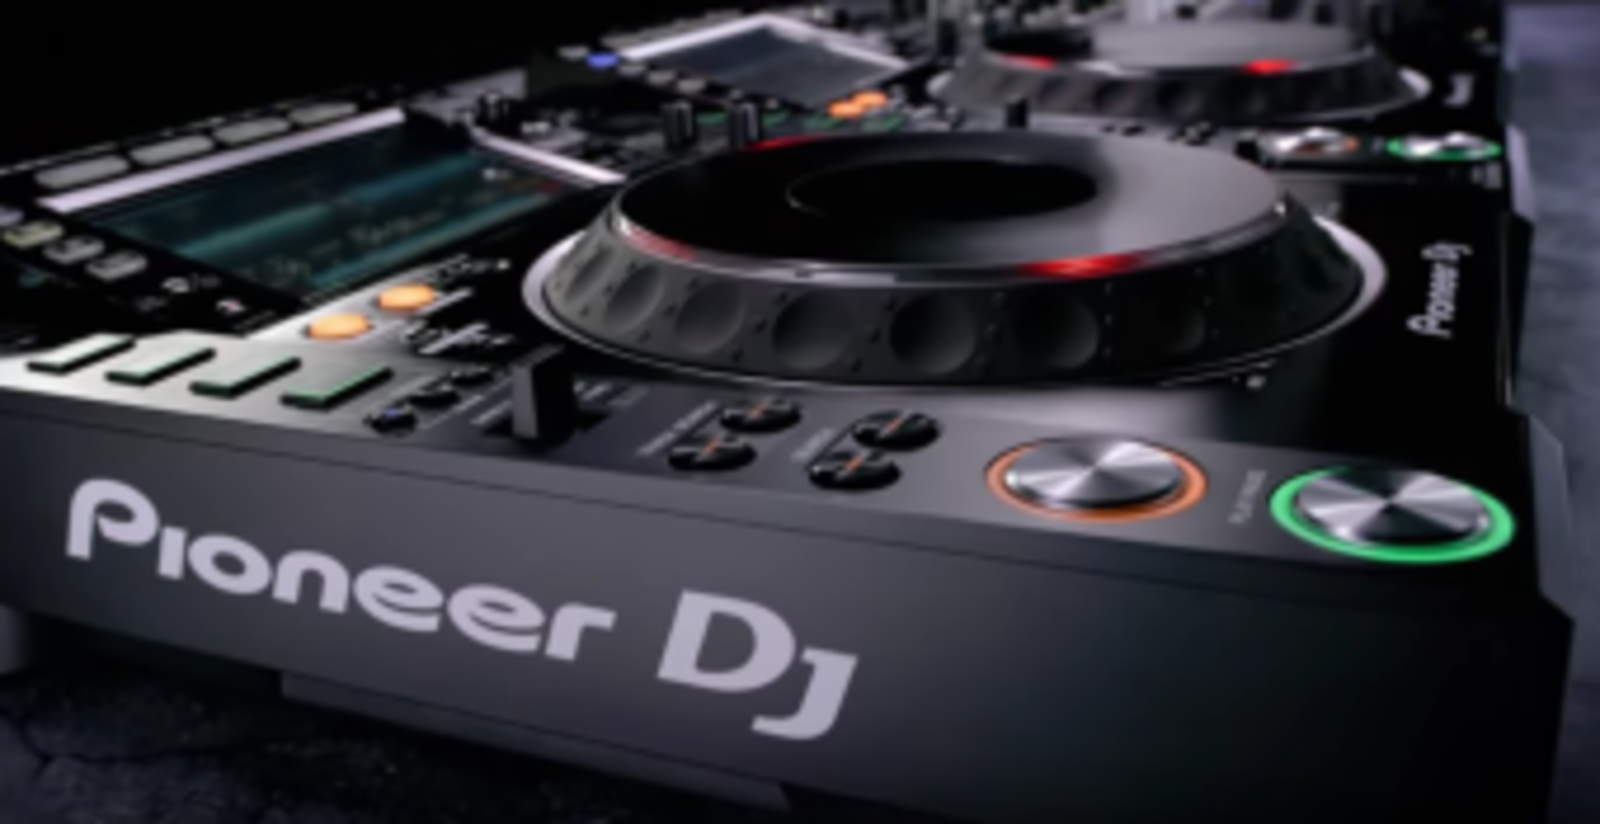 Djsounds Show Live With Kink Showcasing The Pioneer Dj